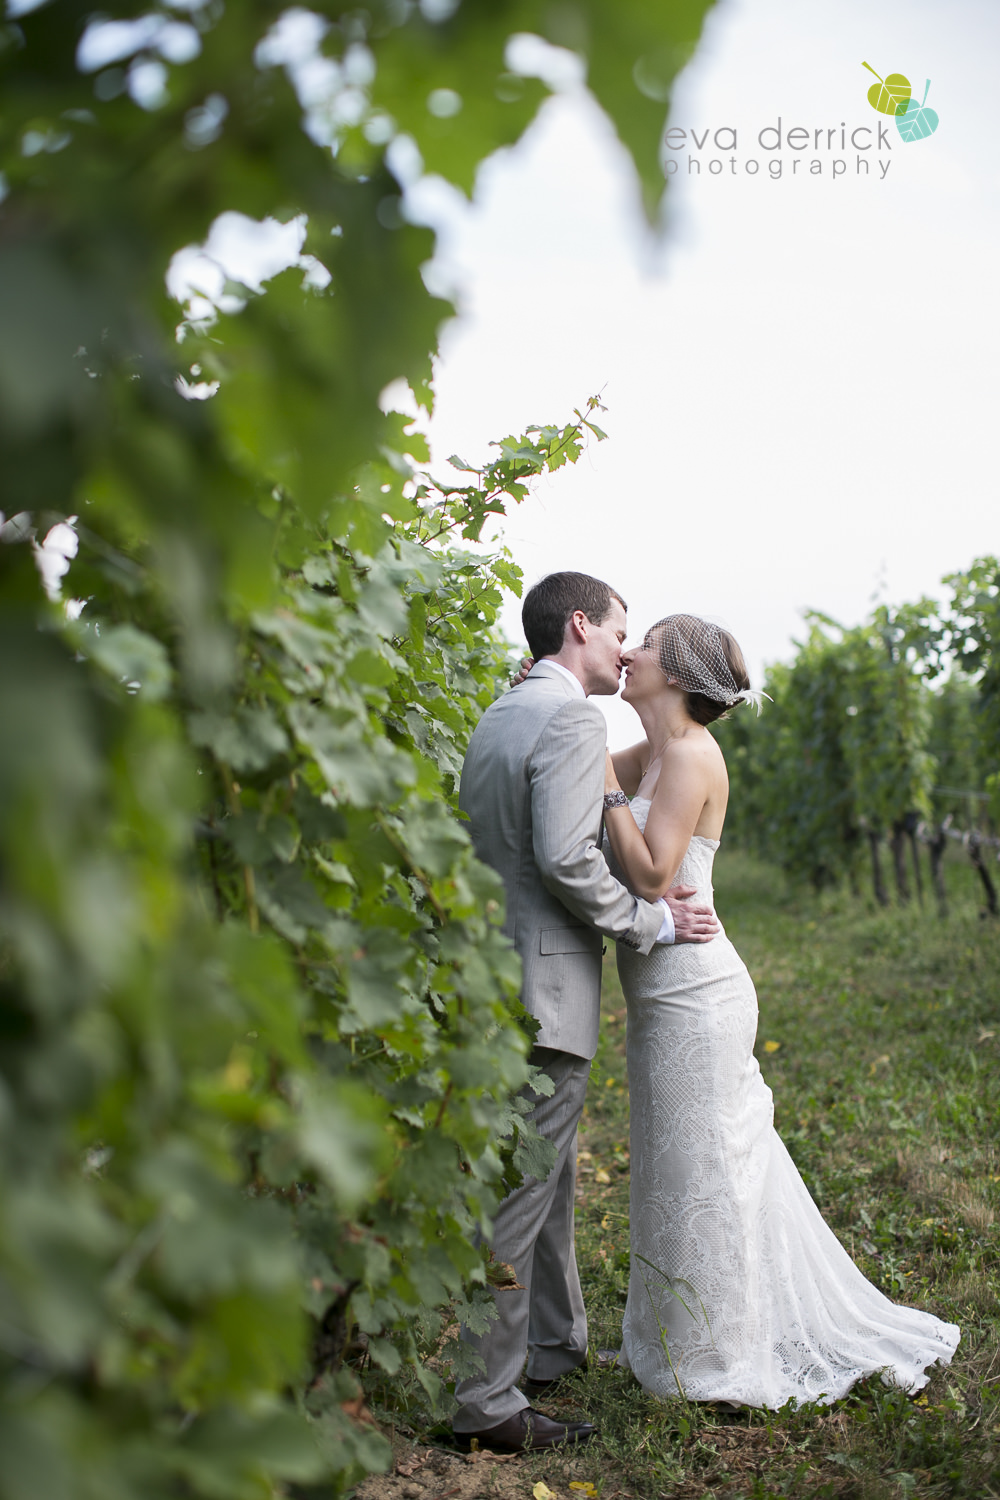 Organized-Crime-Winery-Wedding-Niagara-Wedding-photography-by-Eva-Derrick-Photography-027.JPG